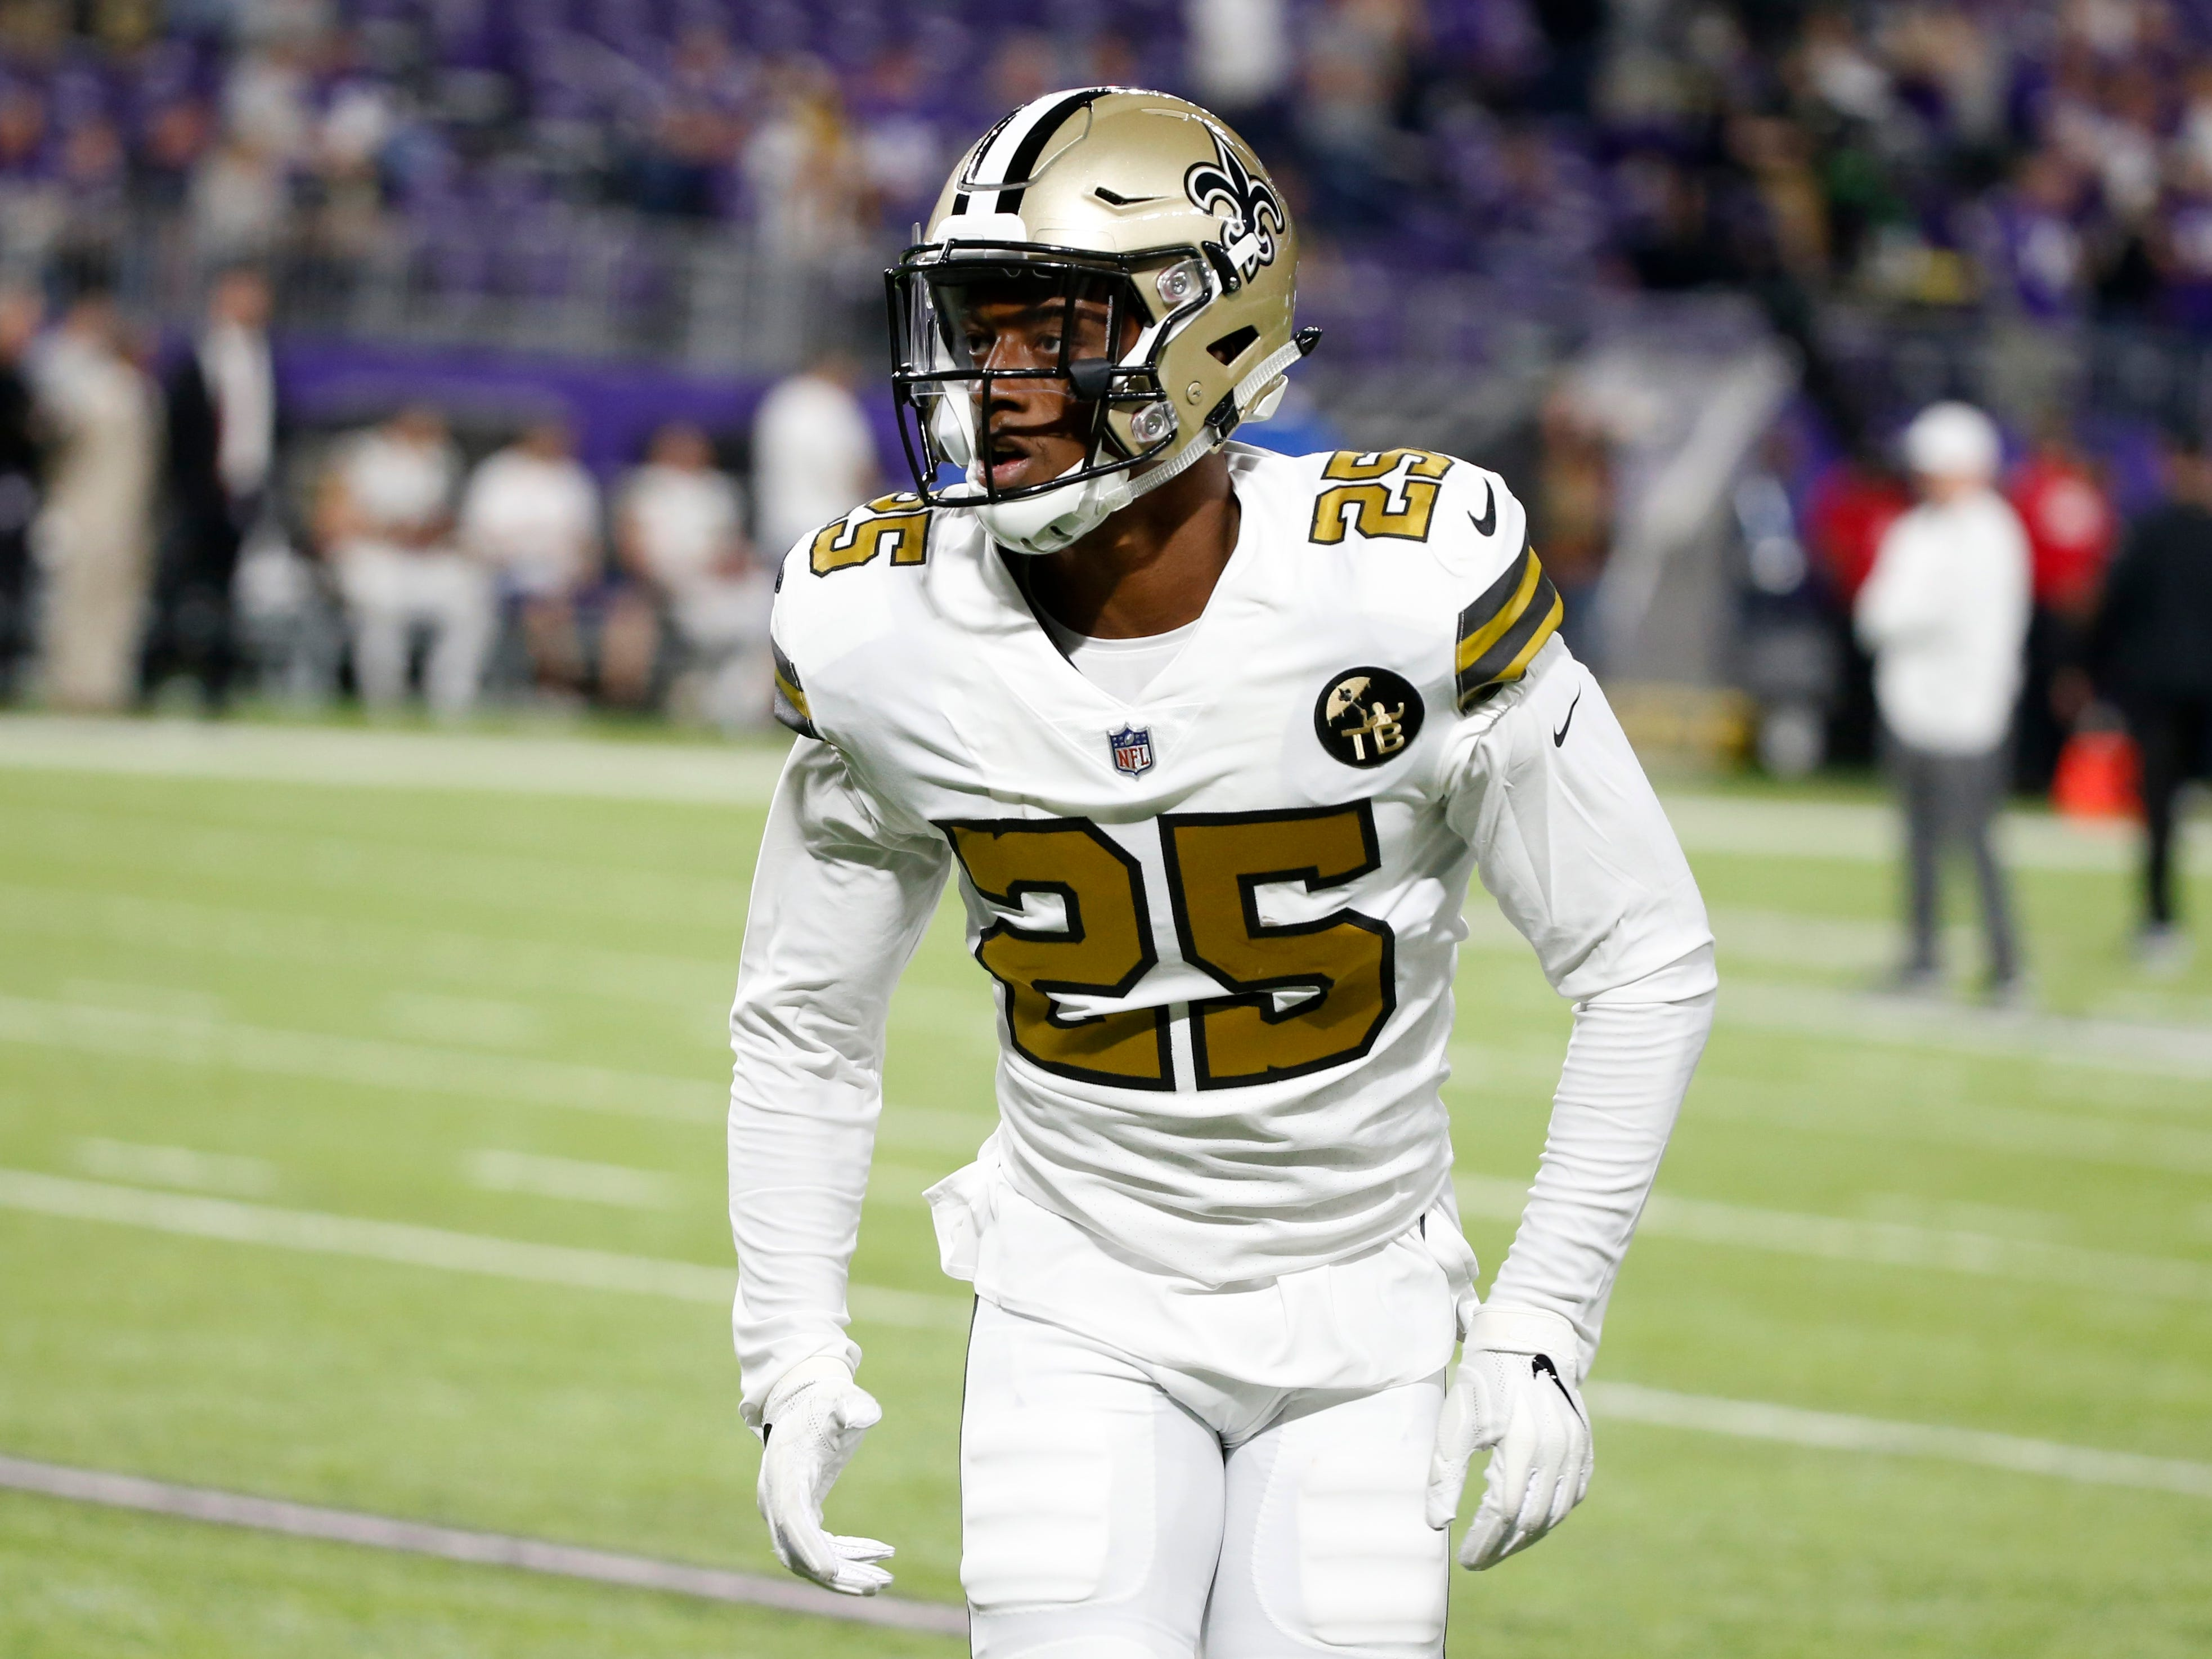 """2. Saints (2): Treat — Eli """"Candy"""" Apple made team-high nine tackles in New Orleans debut. New club thinks he'll fit in nicely with five fellow Buckeyes."""